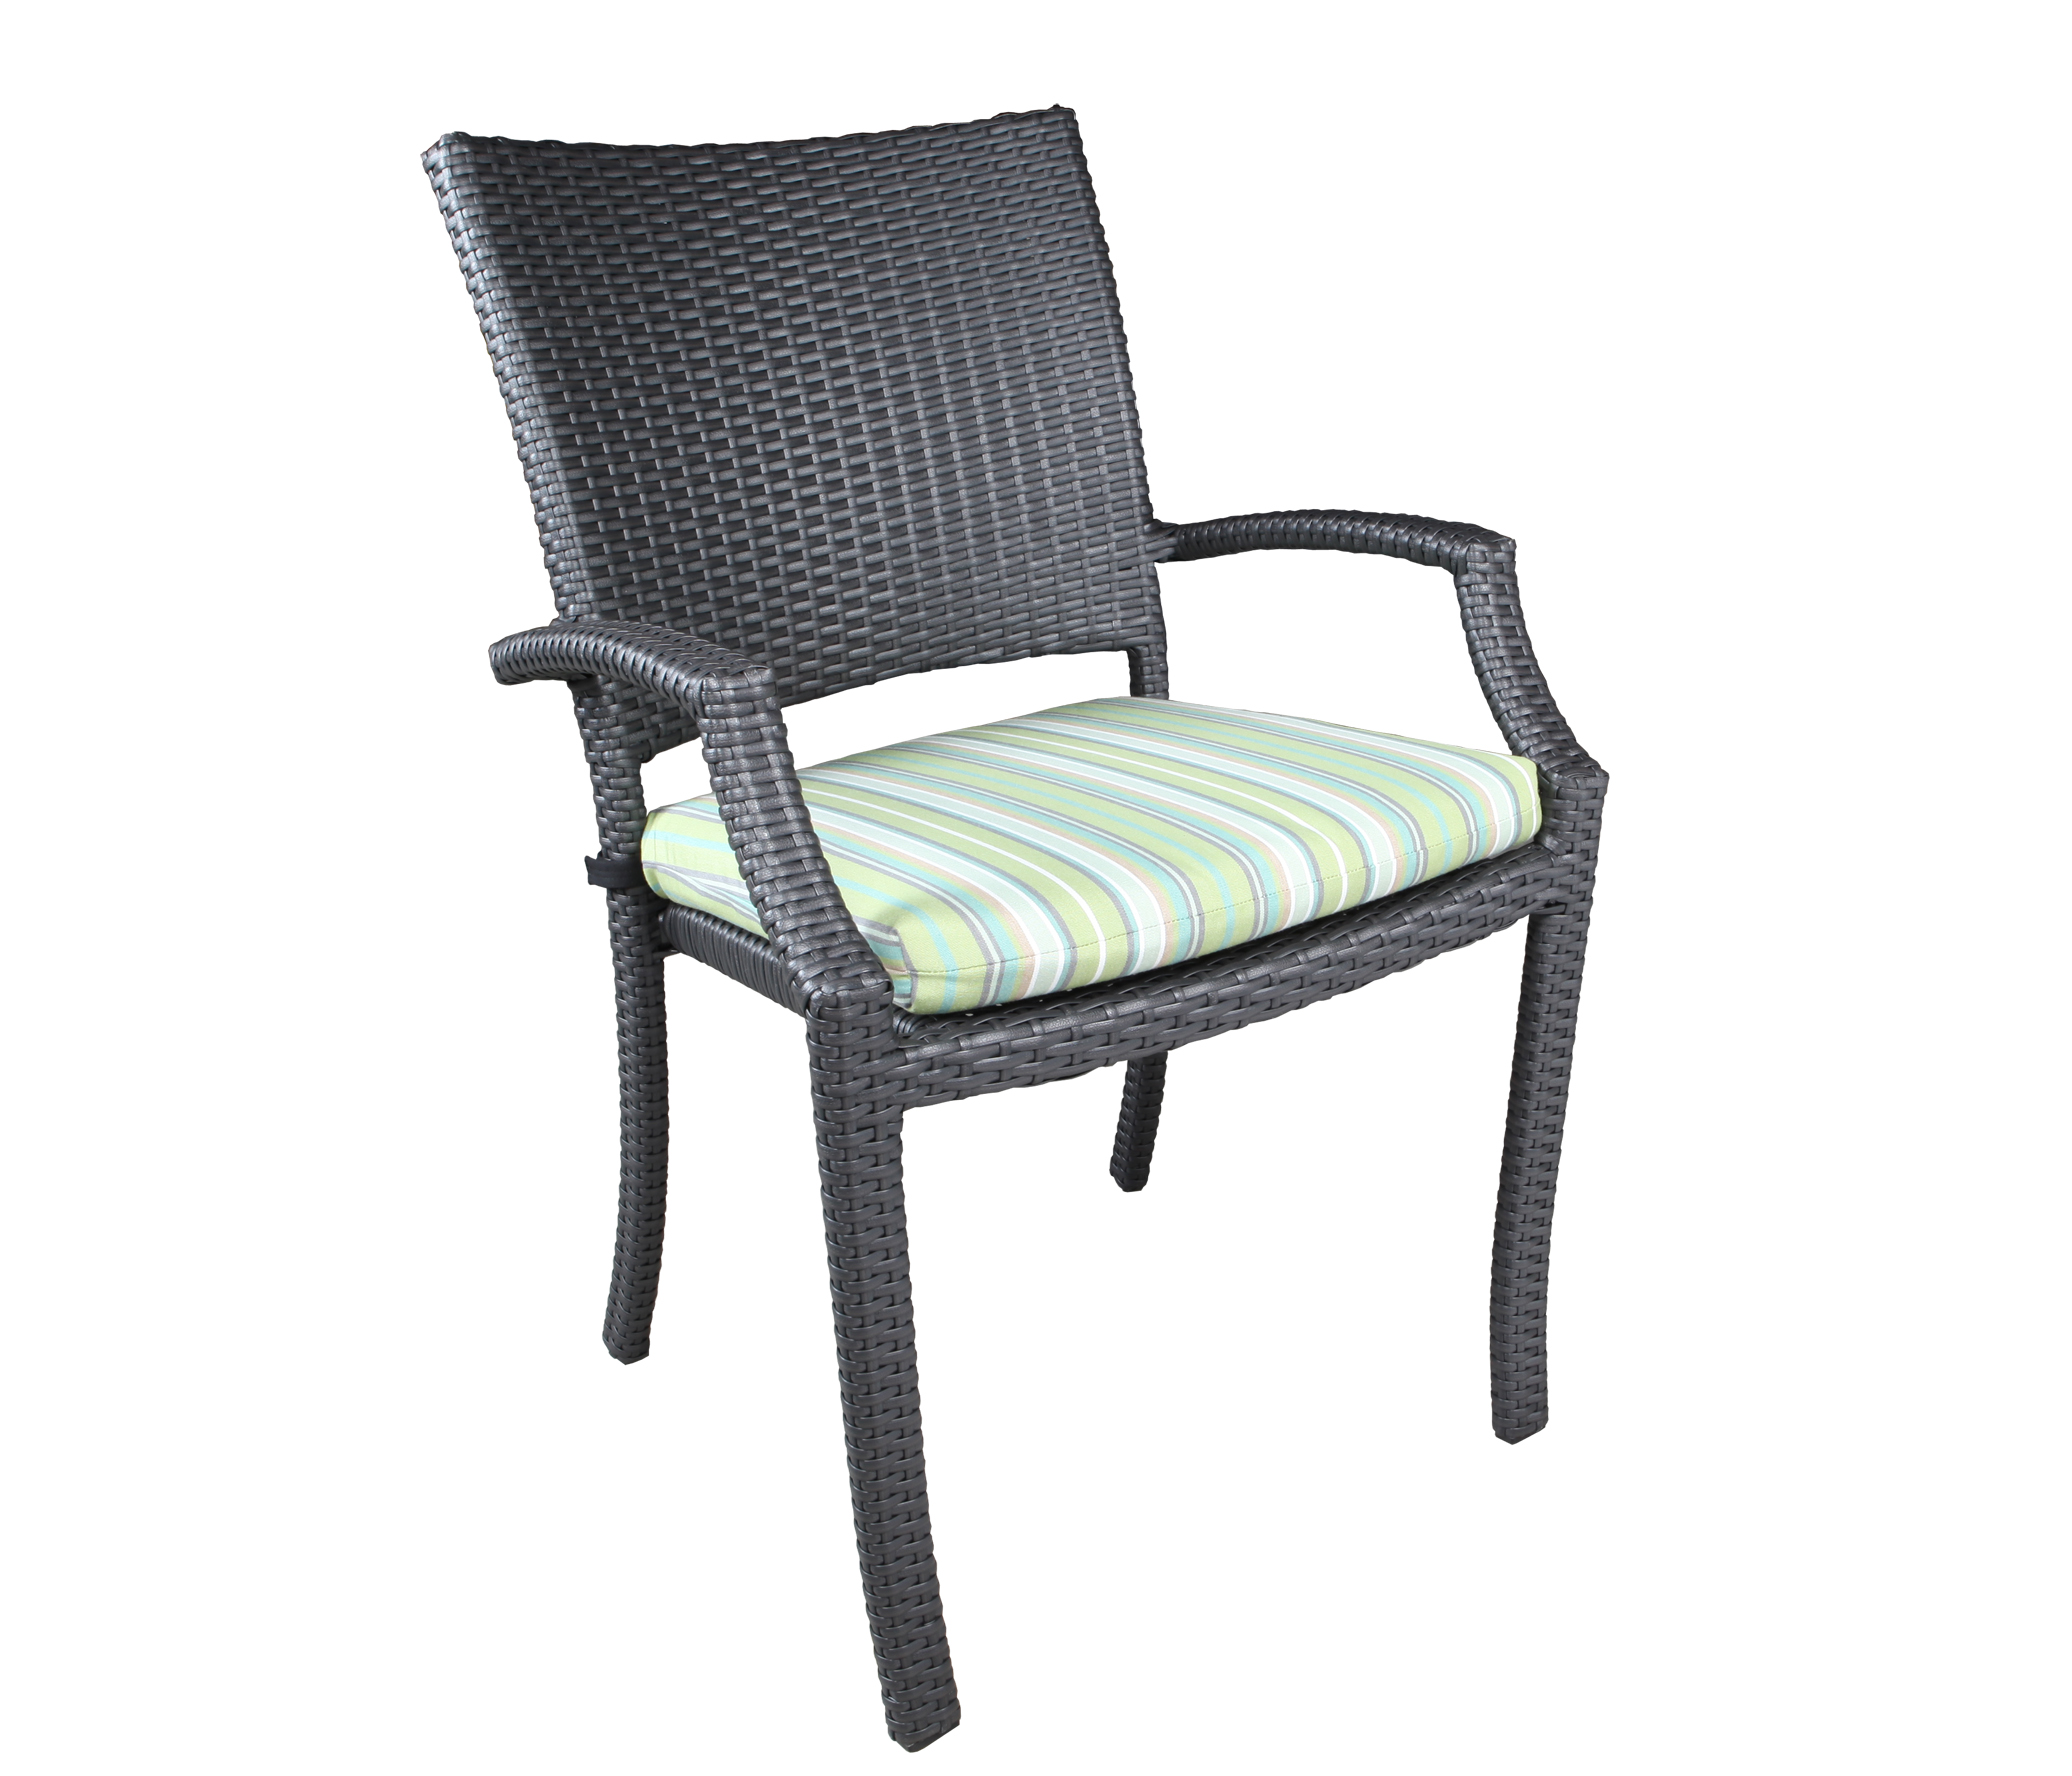 Outdoor Patio Furniture Toronto: Patio Furniture At Sun Country